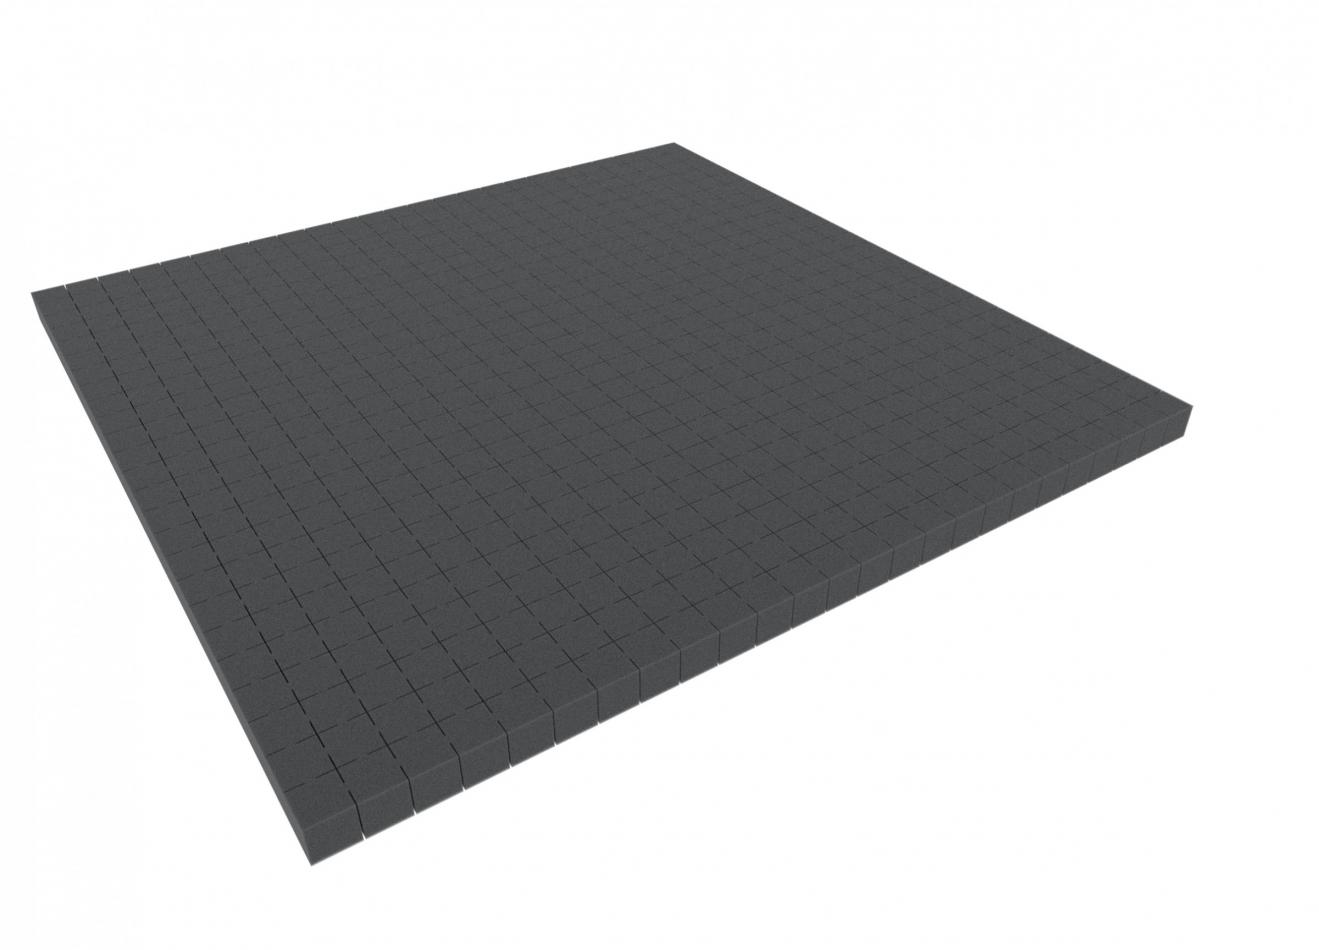 1000 mm x 1000 mm x 20 mm - Raster 20 mm - Pick and Pluck / Pre-Cubed foam tray